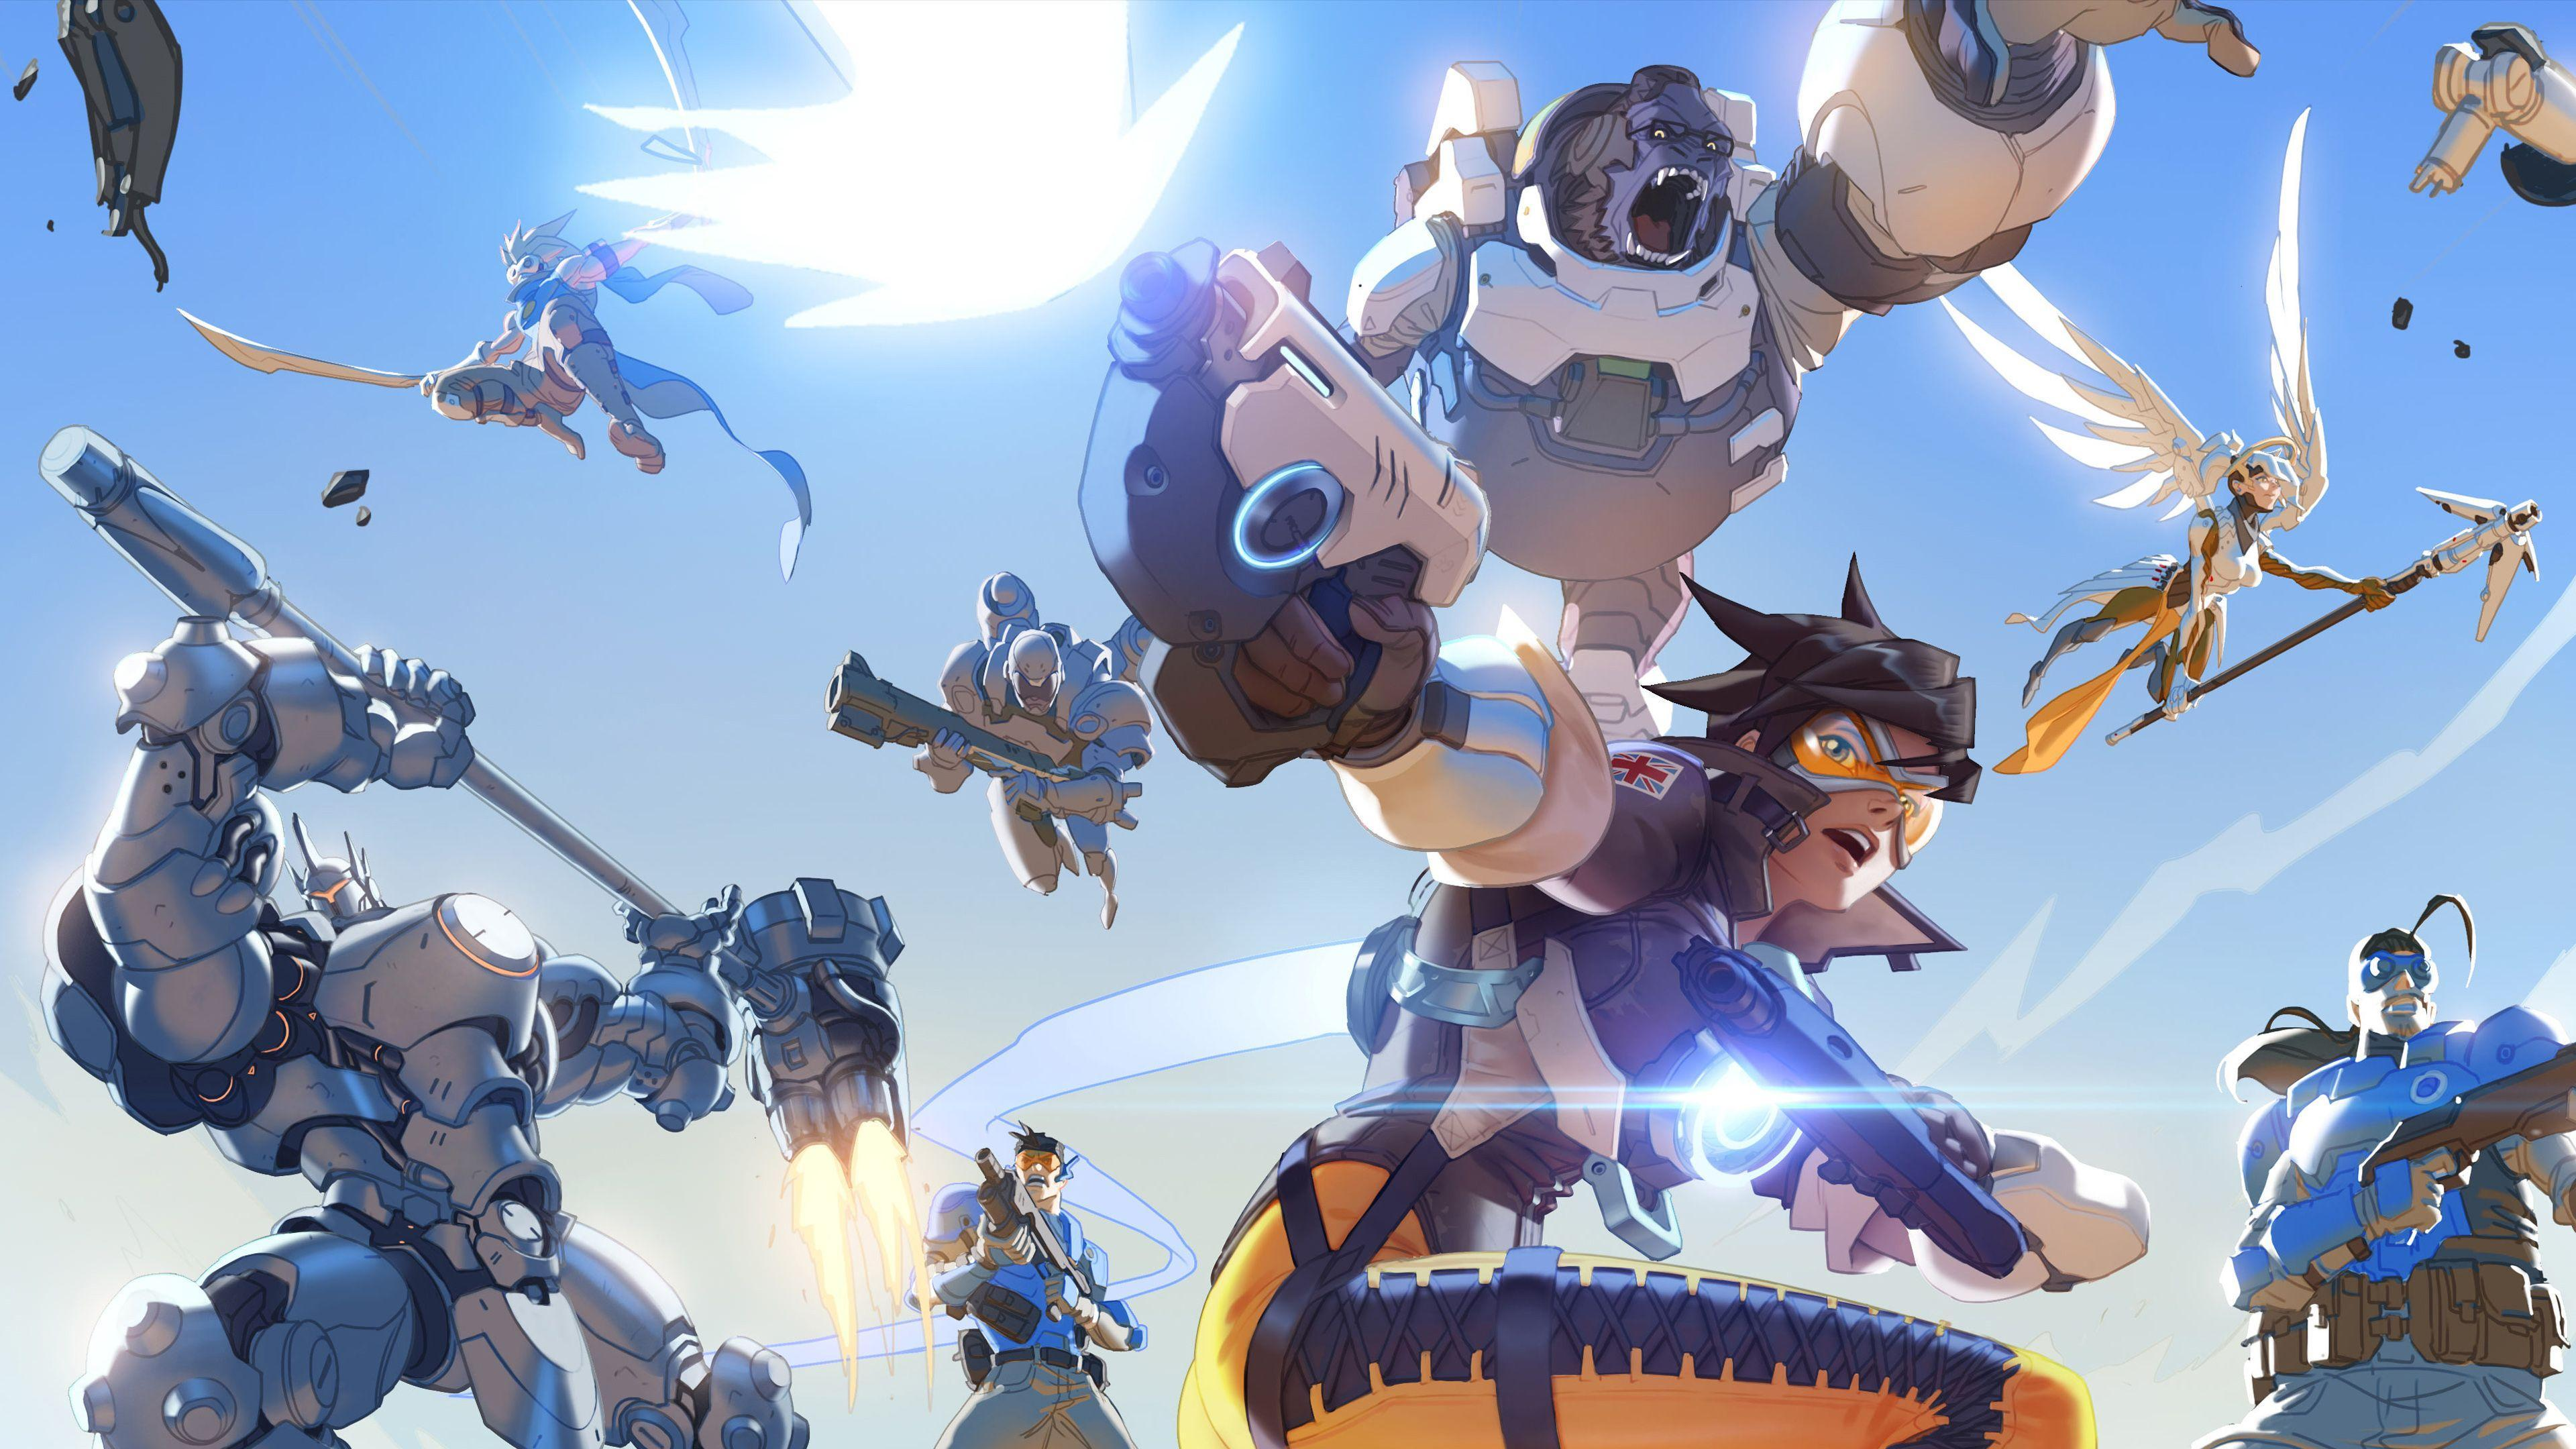 Overwatch Hd Wallpapers Wallpaper Cave